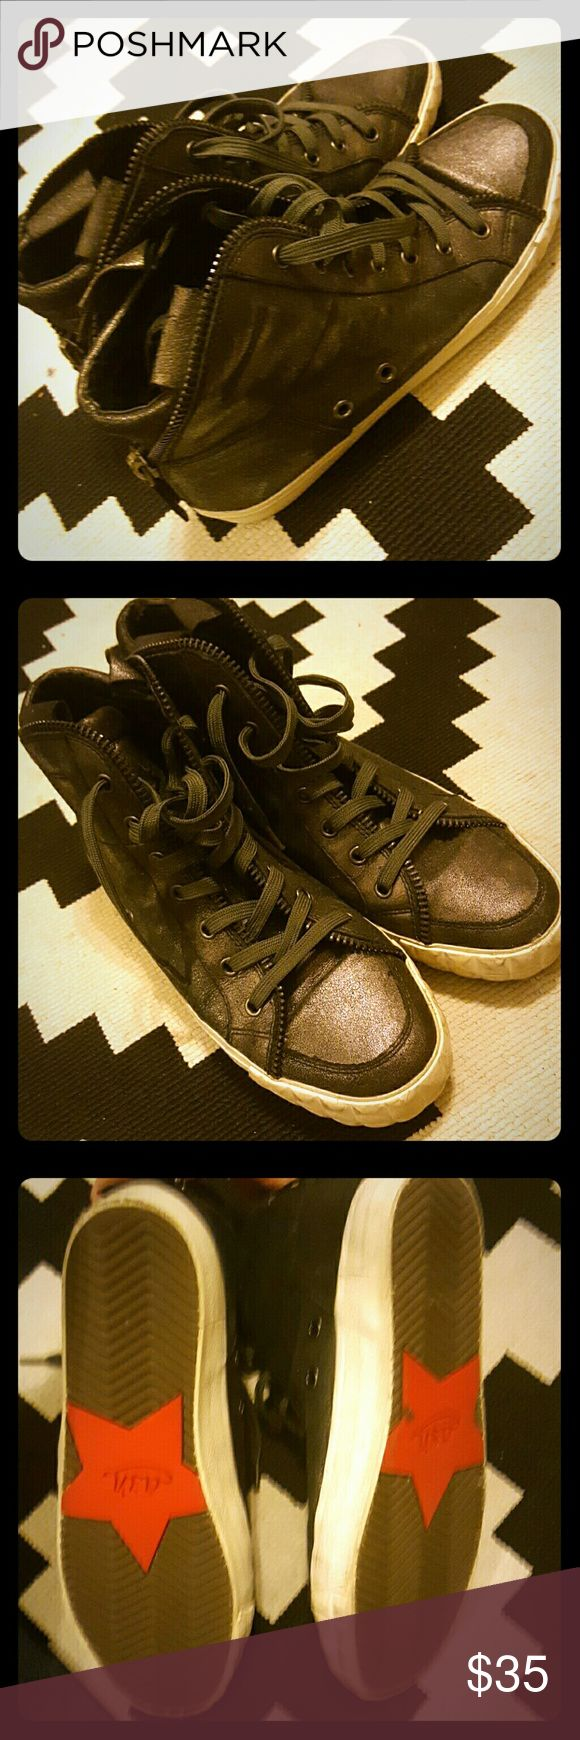 Ash sneakers Worn a couple of times. These could be worn by both genders. Please make an offer. Ash Shoes Sneakers